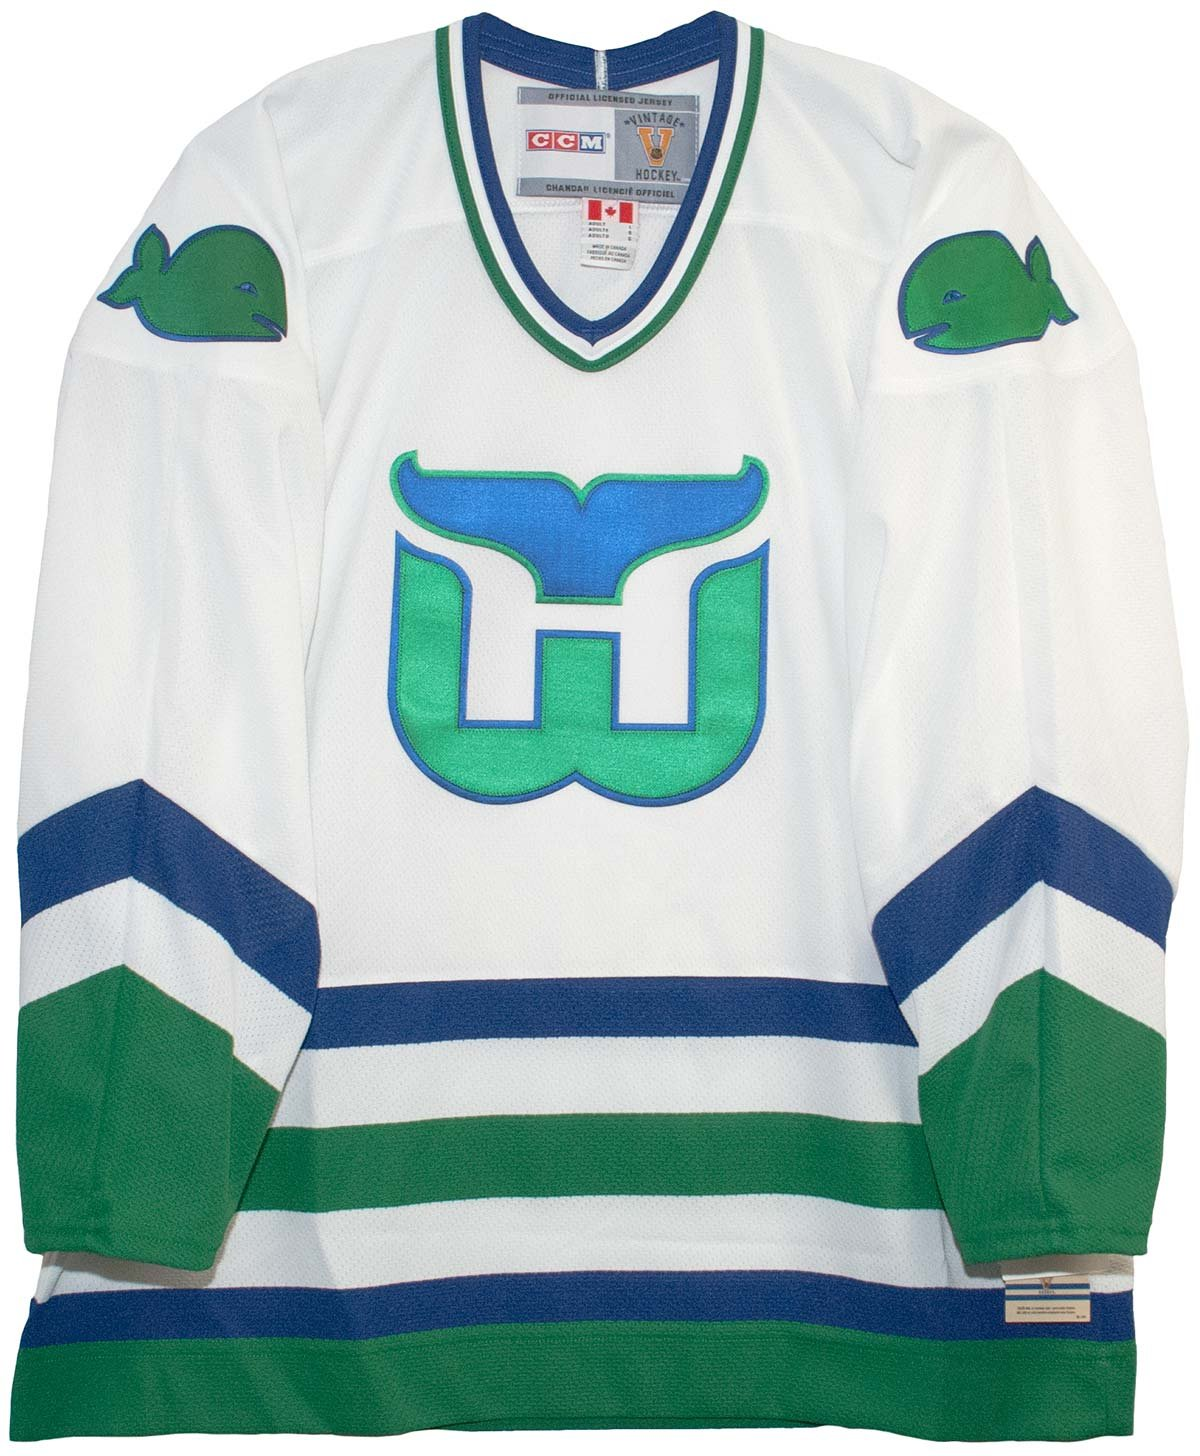 ... netherlands italy vintage hartford whalers 1979 1983 white hockey jersey  525d8 56fd2 59d18 f05b0 70723d946